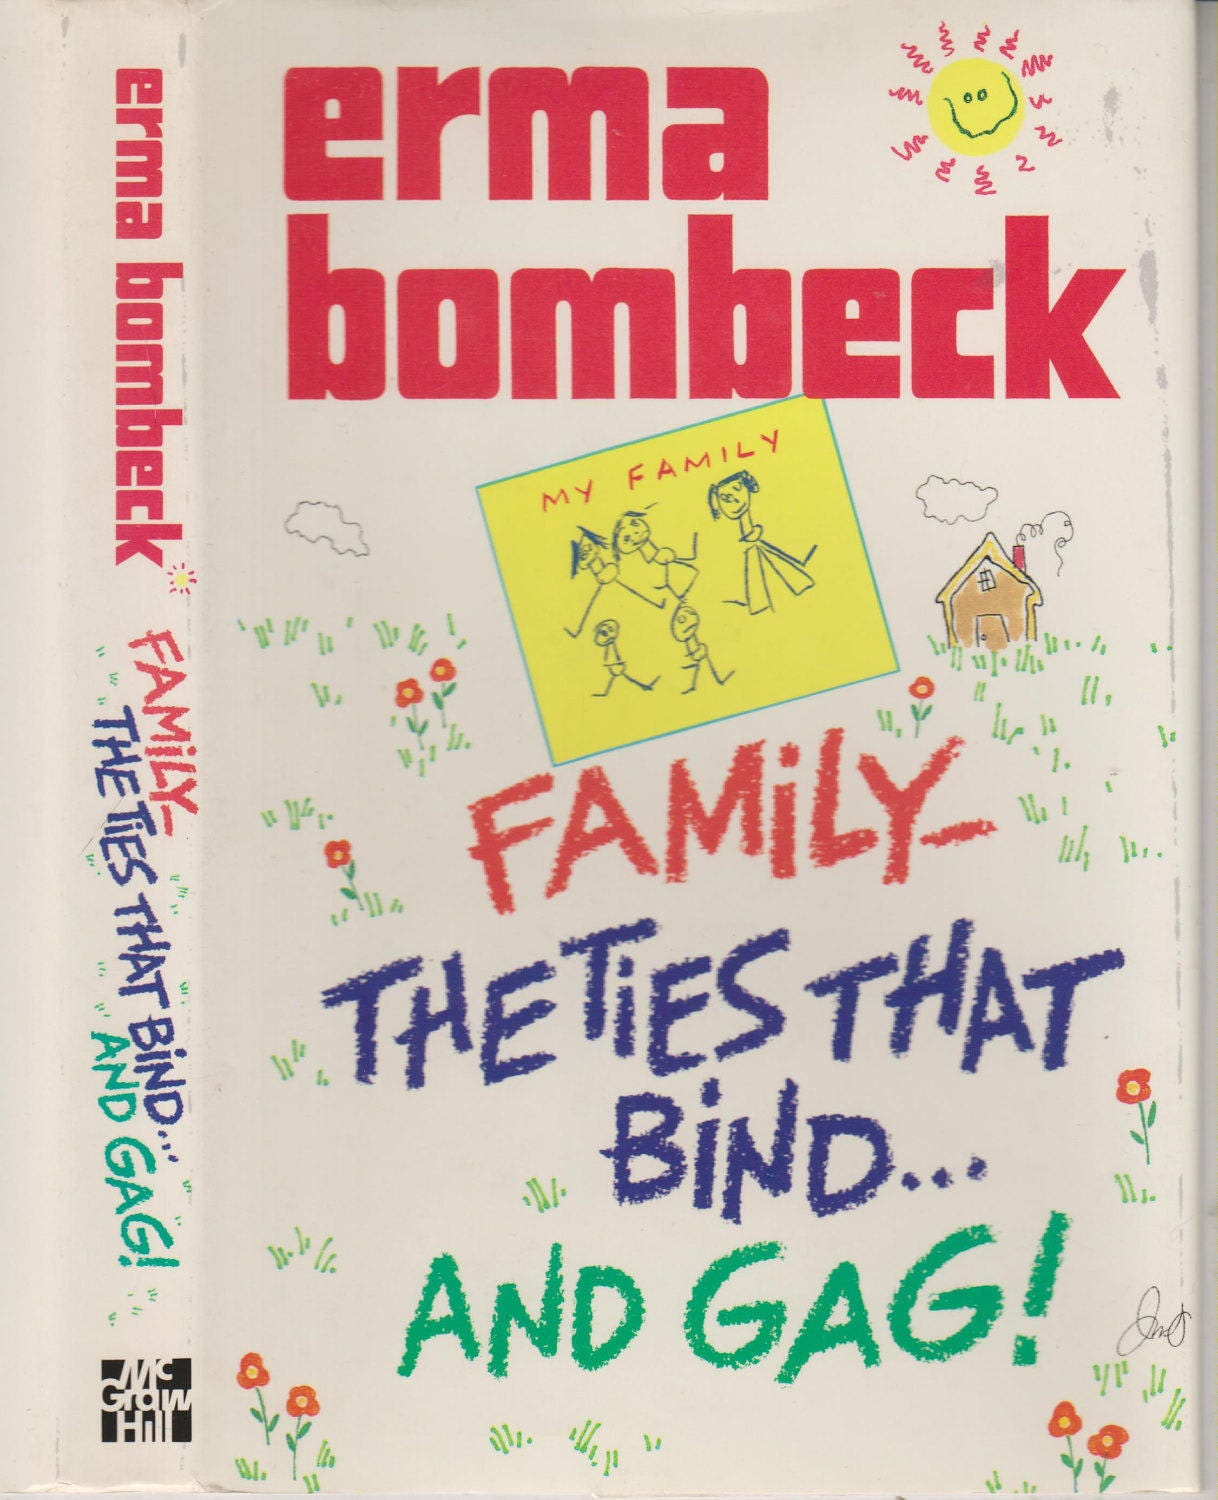 The Ties That Bind...and Gag! By Erma Bombeck